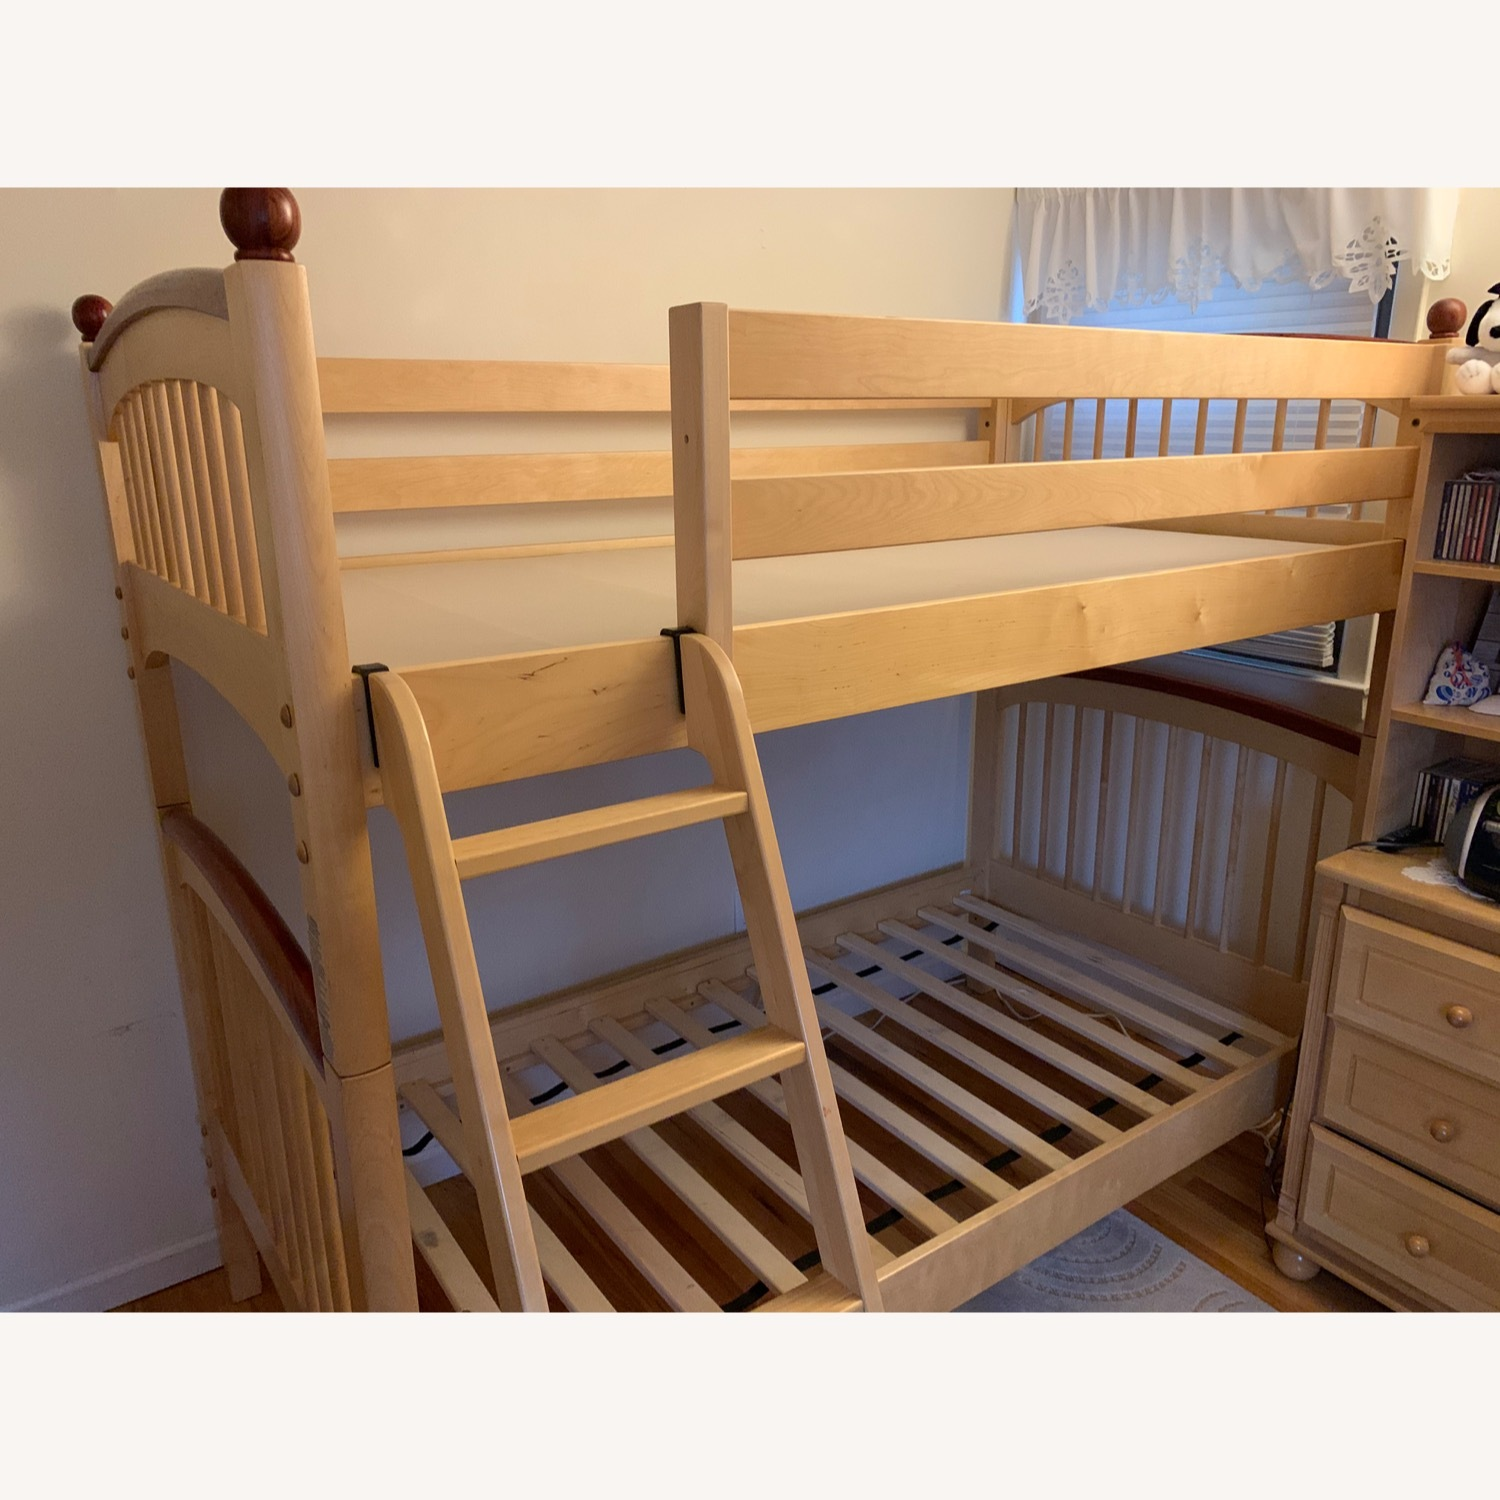 Bolton Children's Windsor Twin Bunk Beds - image-1